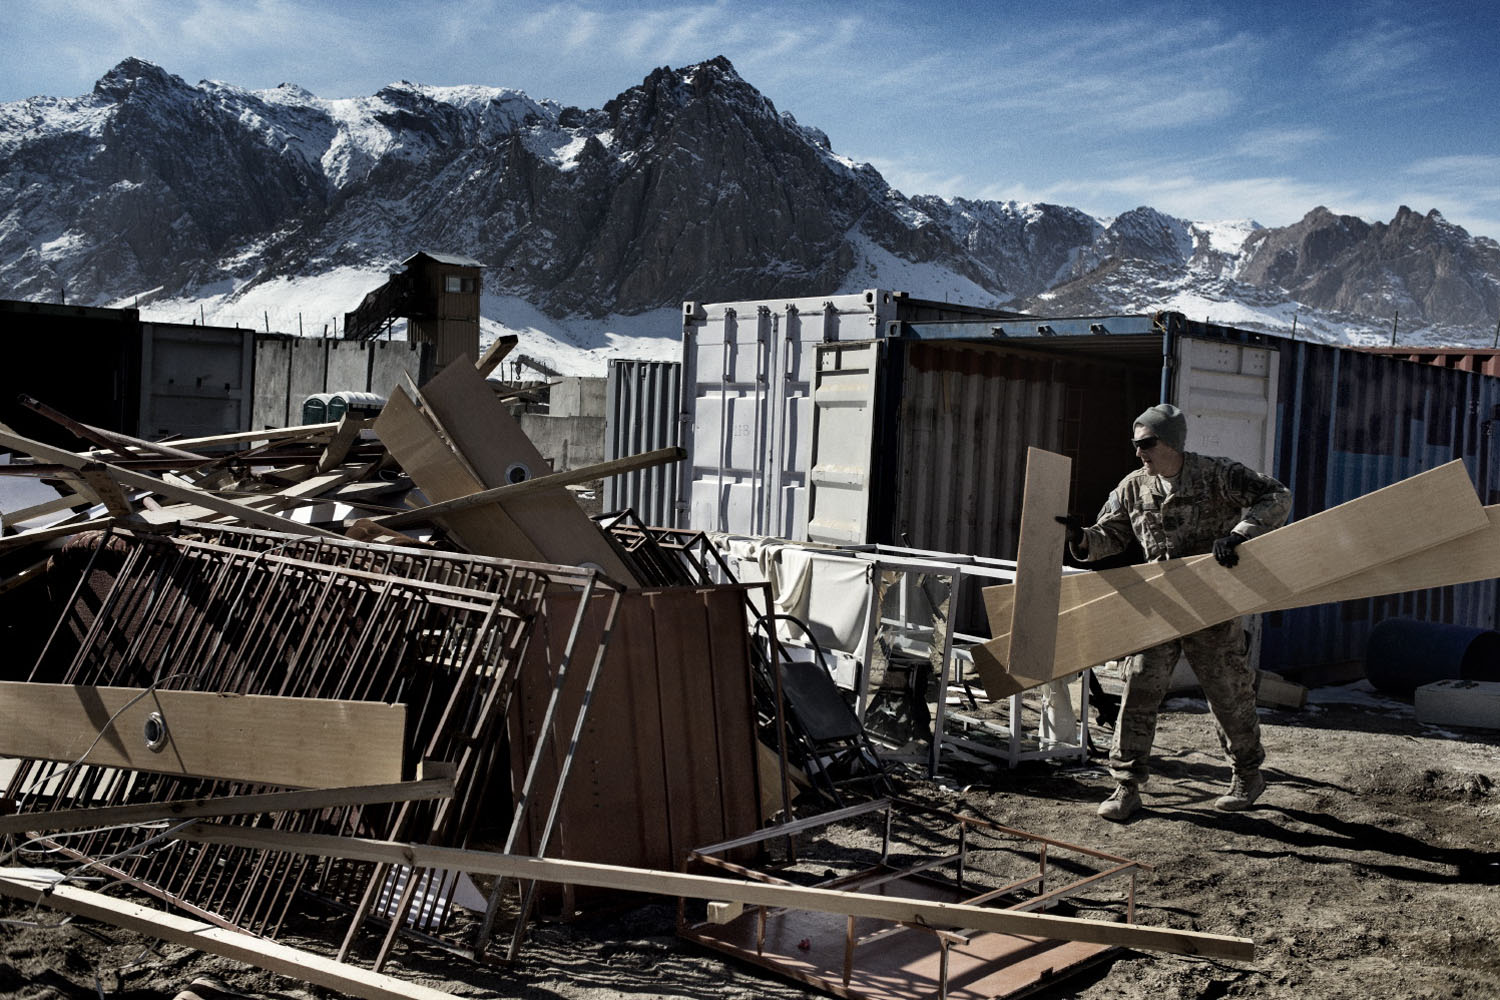 A soldier from Bull Battery, 4-319th Airborne Field Artillery Battalion unloads scrap metal from containers in preparation for leaving Forward Operating Altimur, Logar Province, Afghanistan.